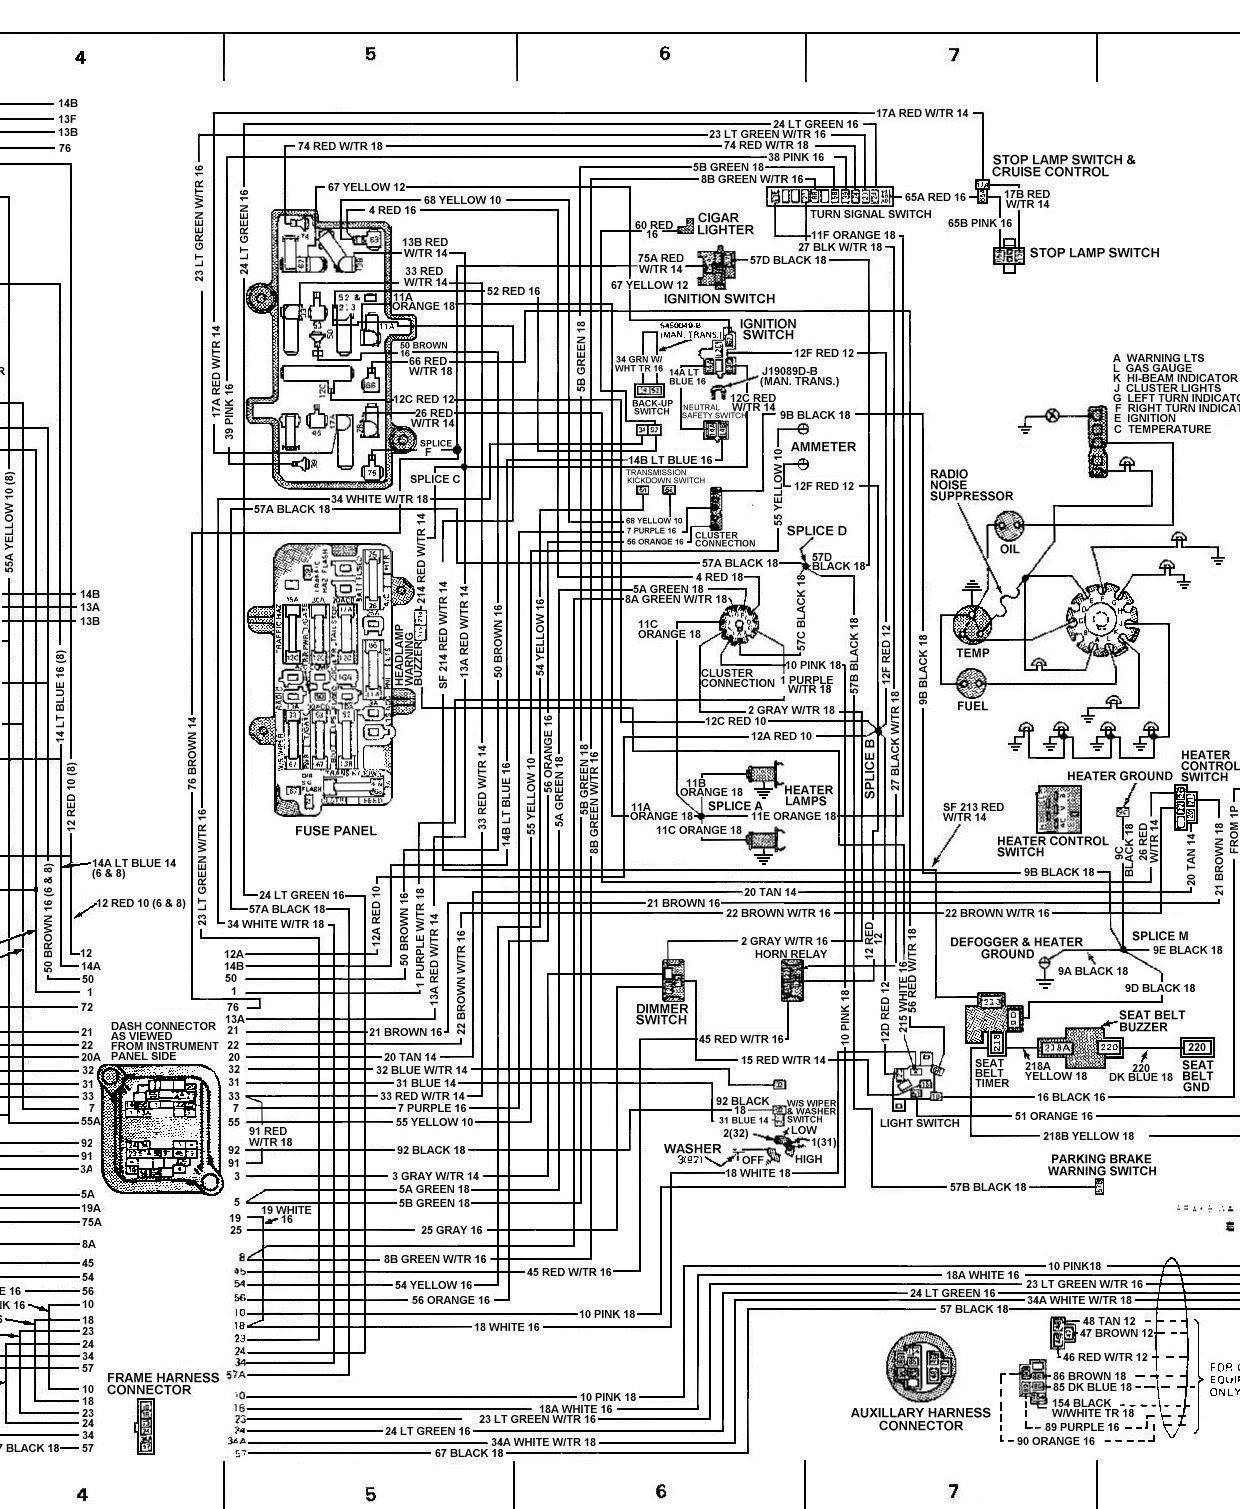 Chevy Wiring Diagrams Schematics Avalanche 2004 1500 Pinterest Honda Accord Sedans And